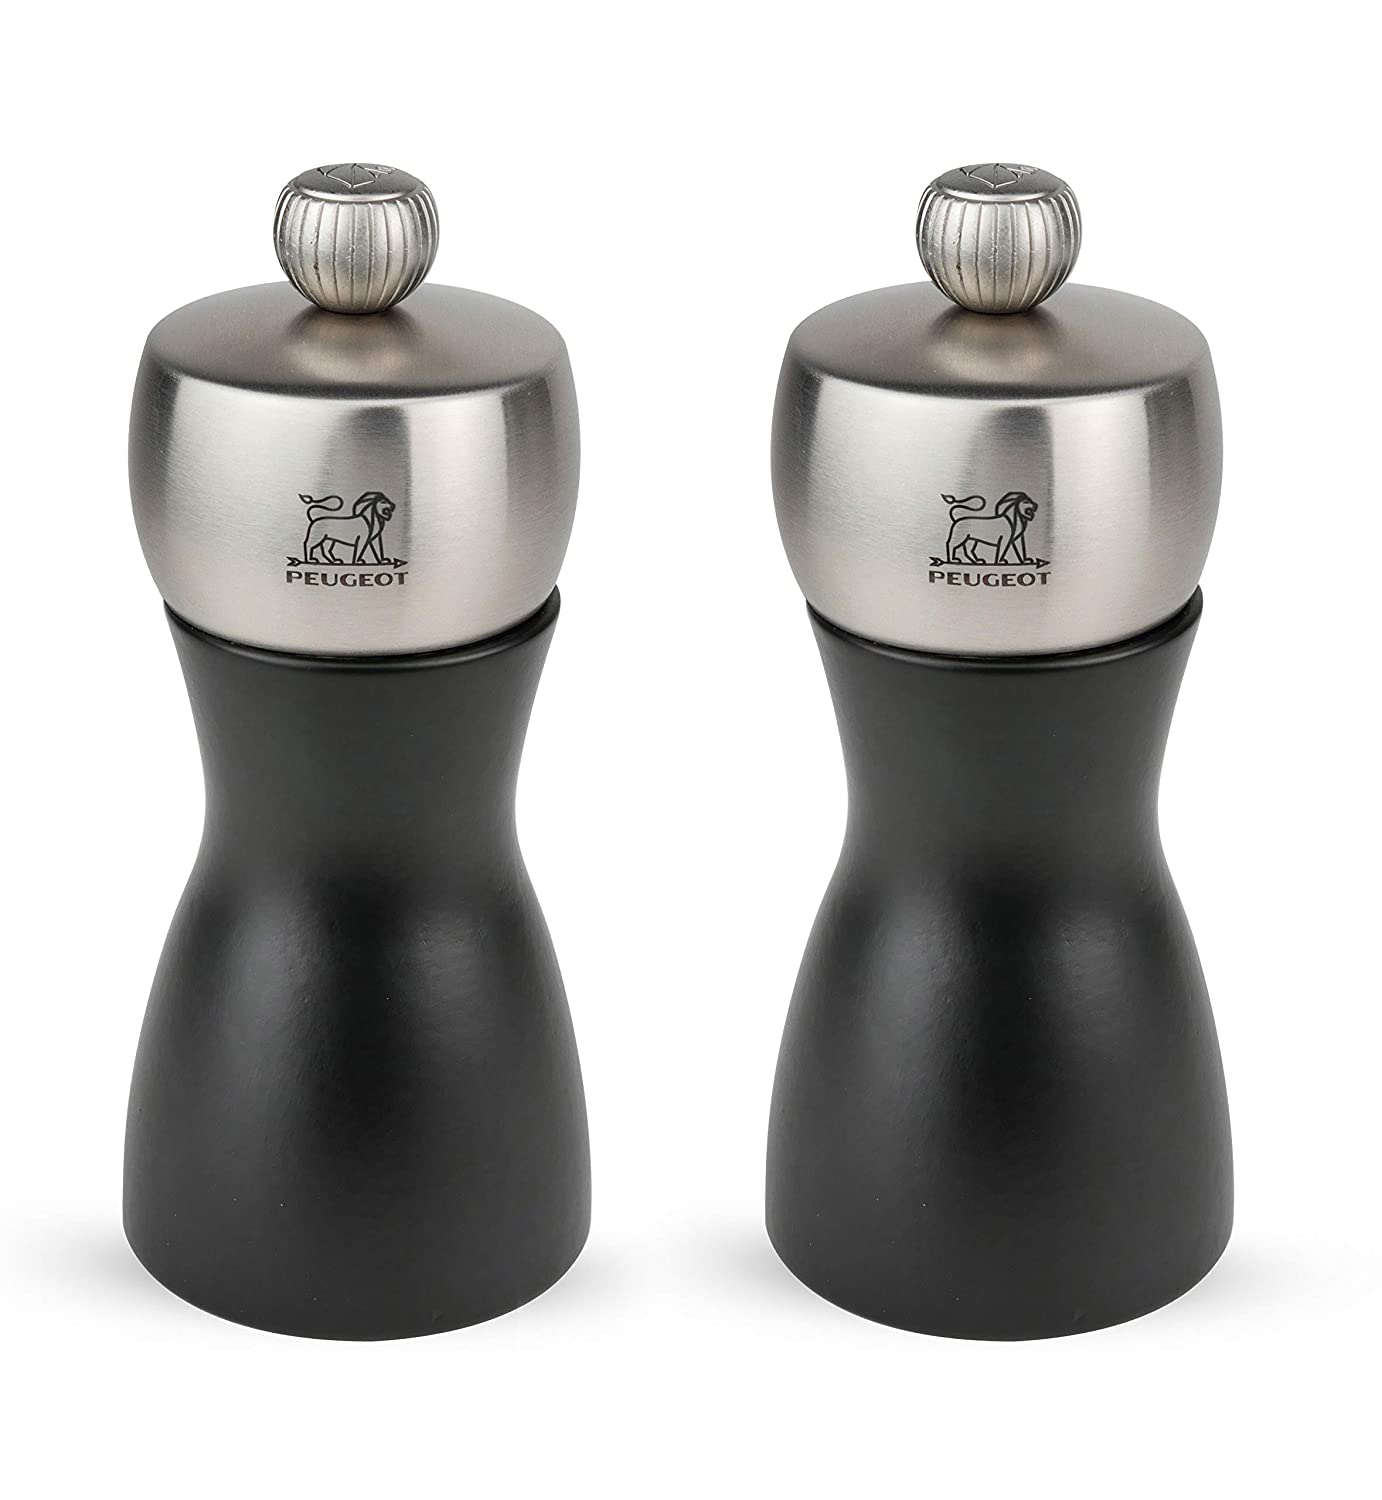 Peugeot Fidji Stainless Steel Salt and Pepper Mill Set, 12cm/4 3/4-Inch, Black Matte